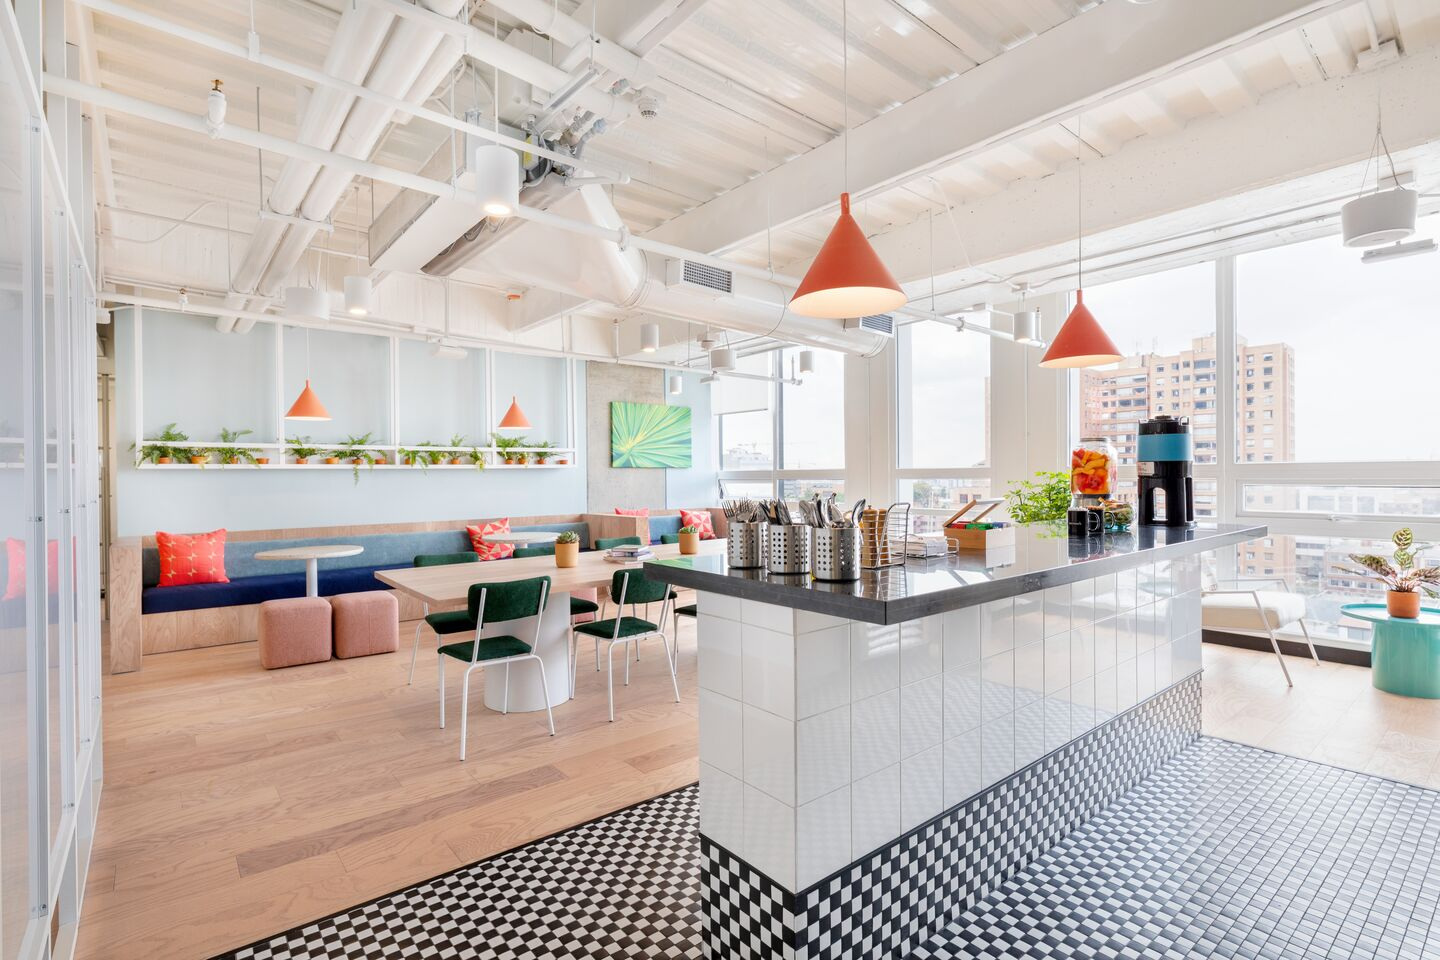 WeWork Oficinas Amuebladas & Coworking Central Interlomas